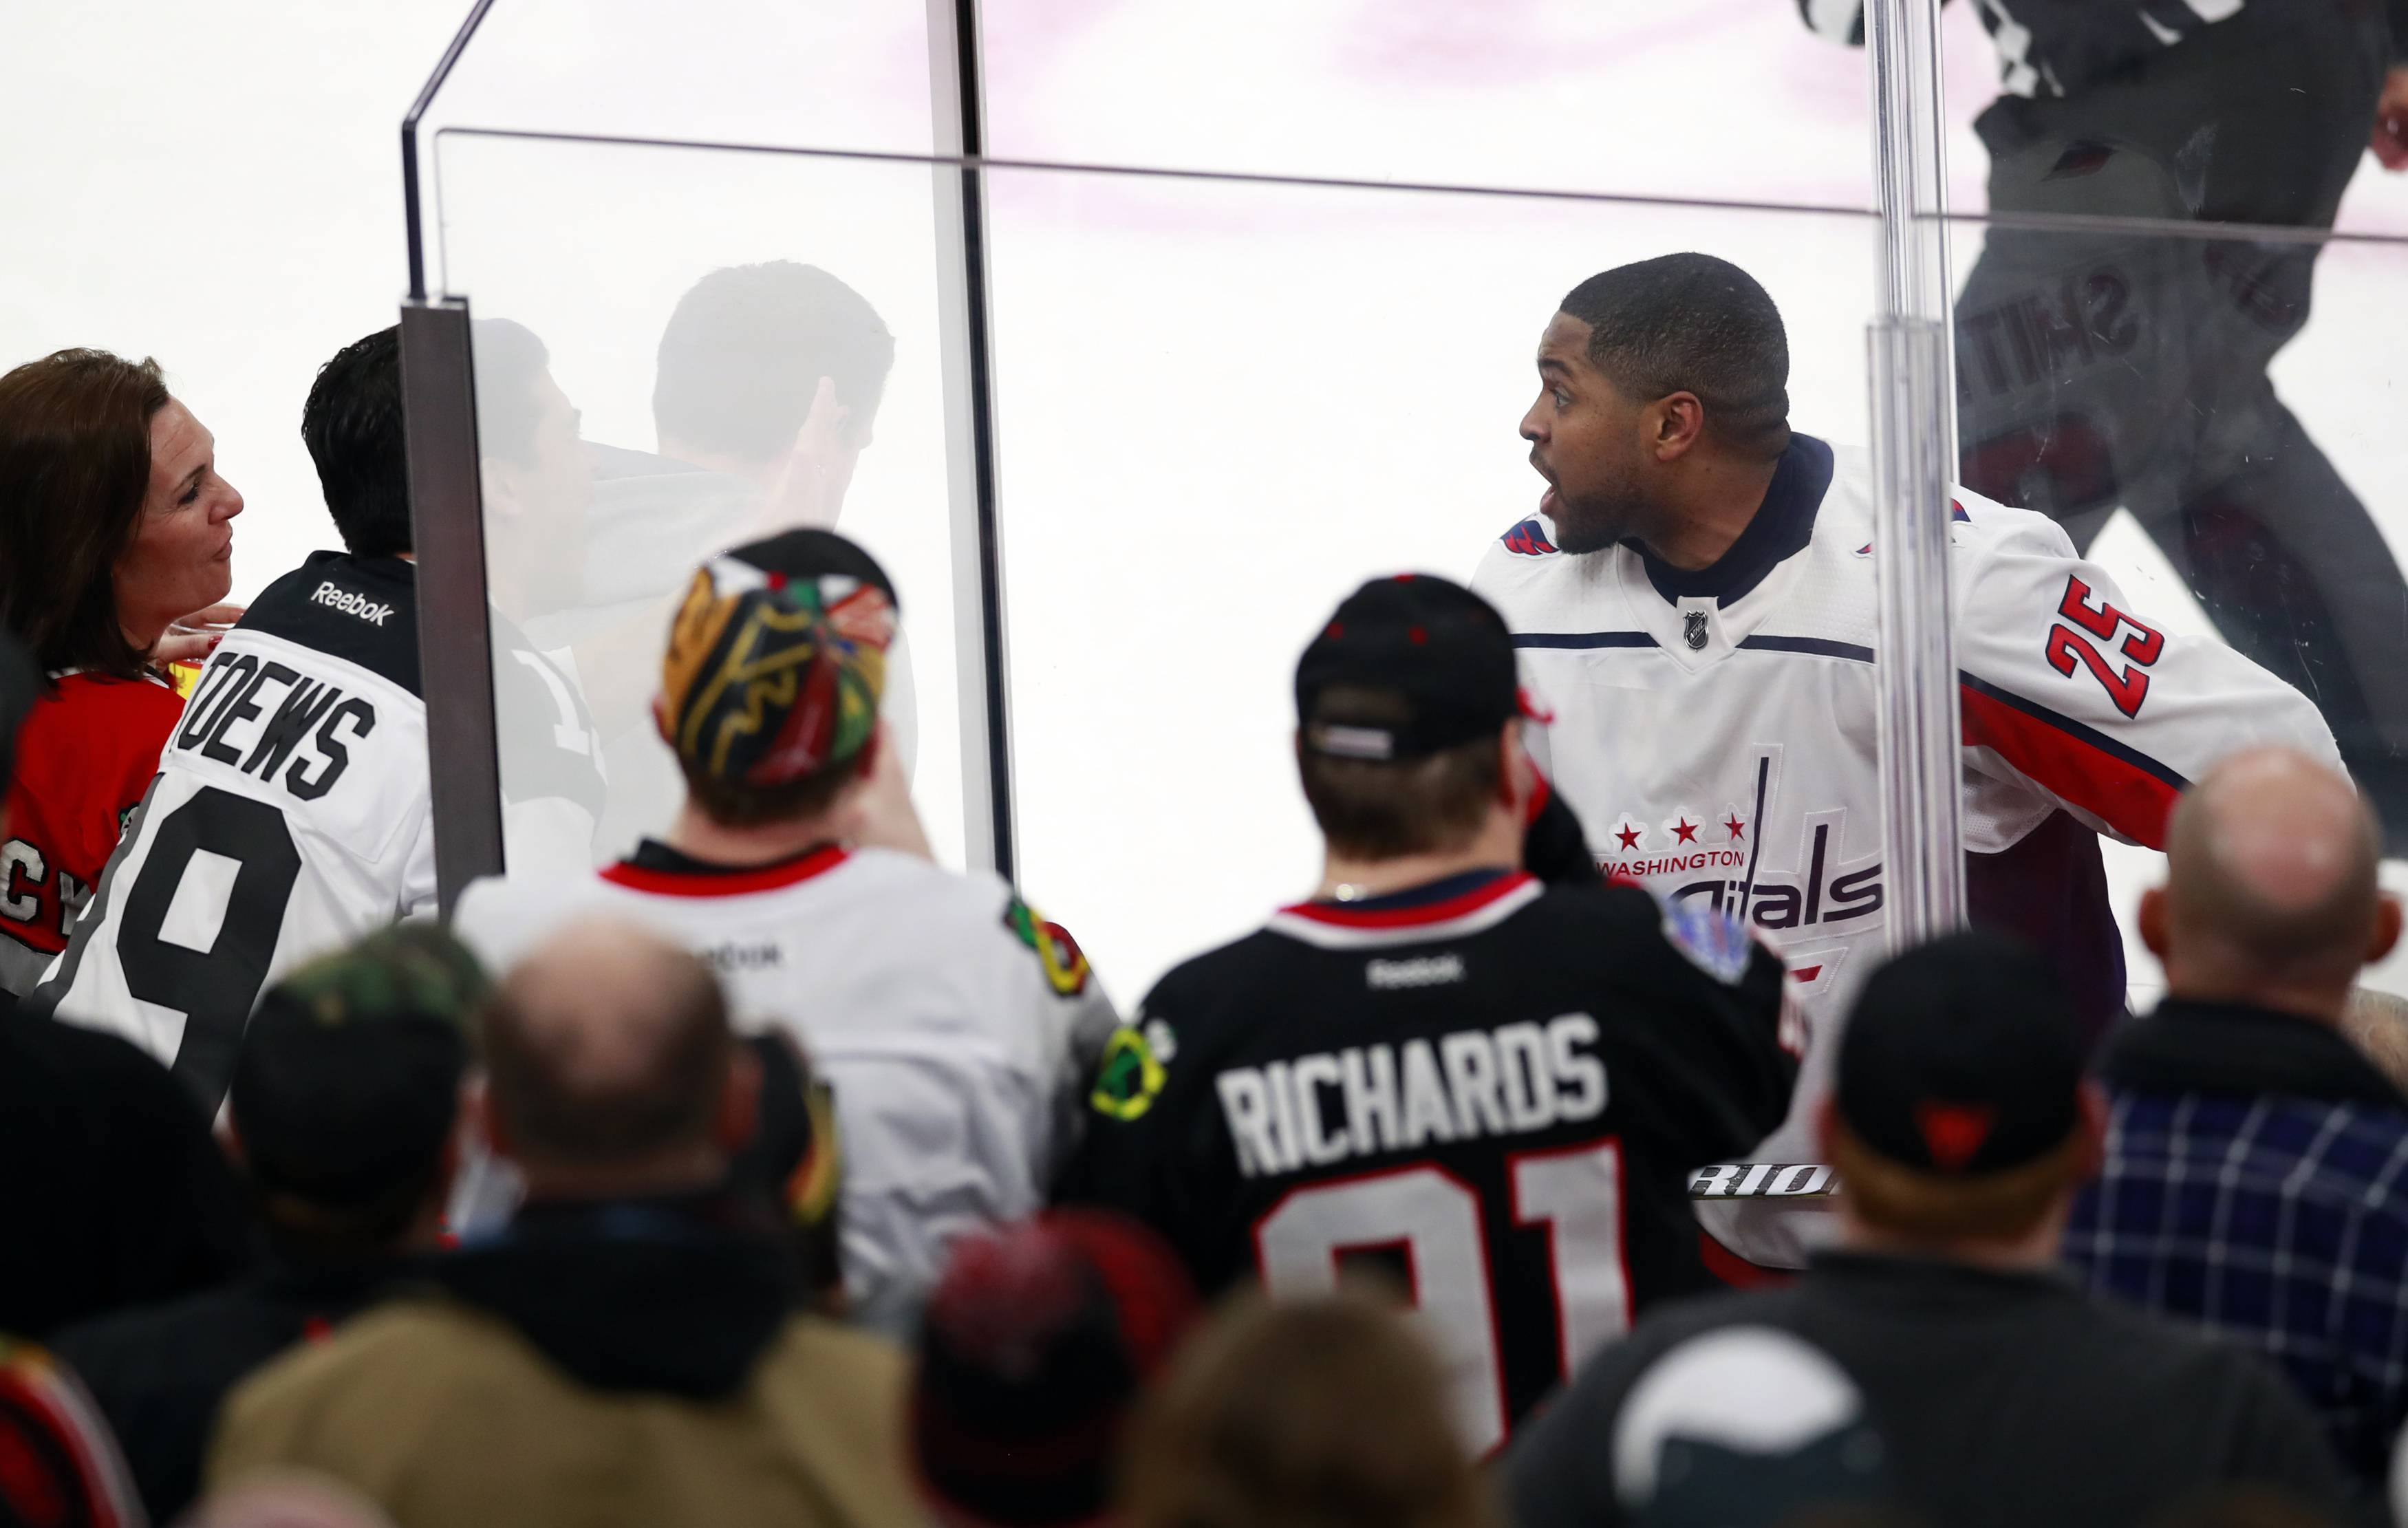 Washington Capitals right wing Devante Smith-Pelly argues with Chicago Blackhawks fans from the penalty box Saturday during the third period in Chicago. The Blackhawks won 7-1.